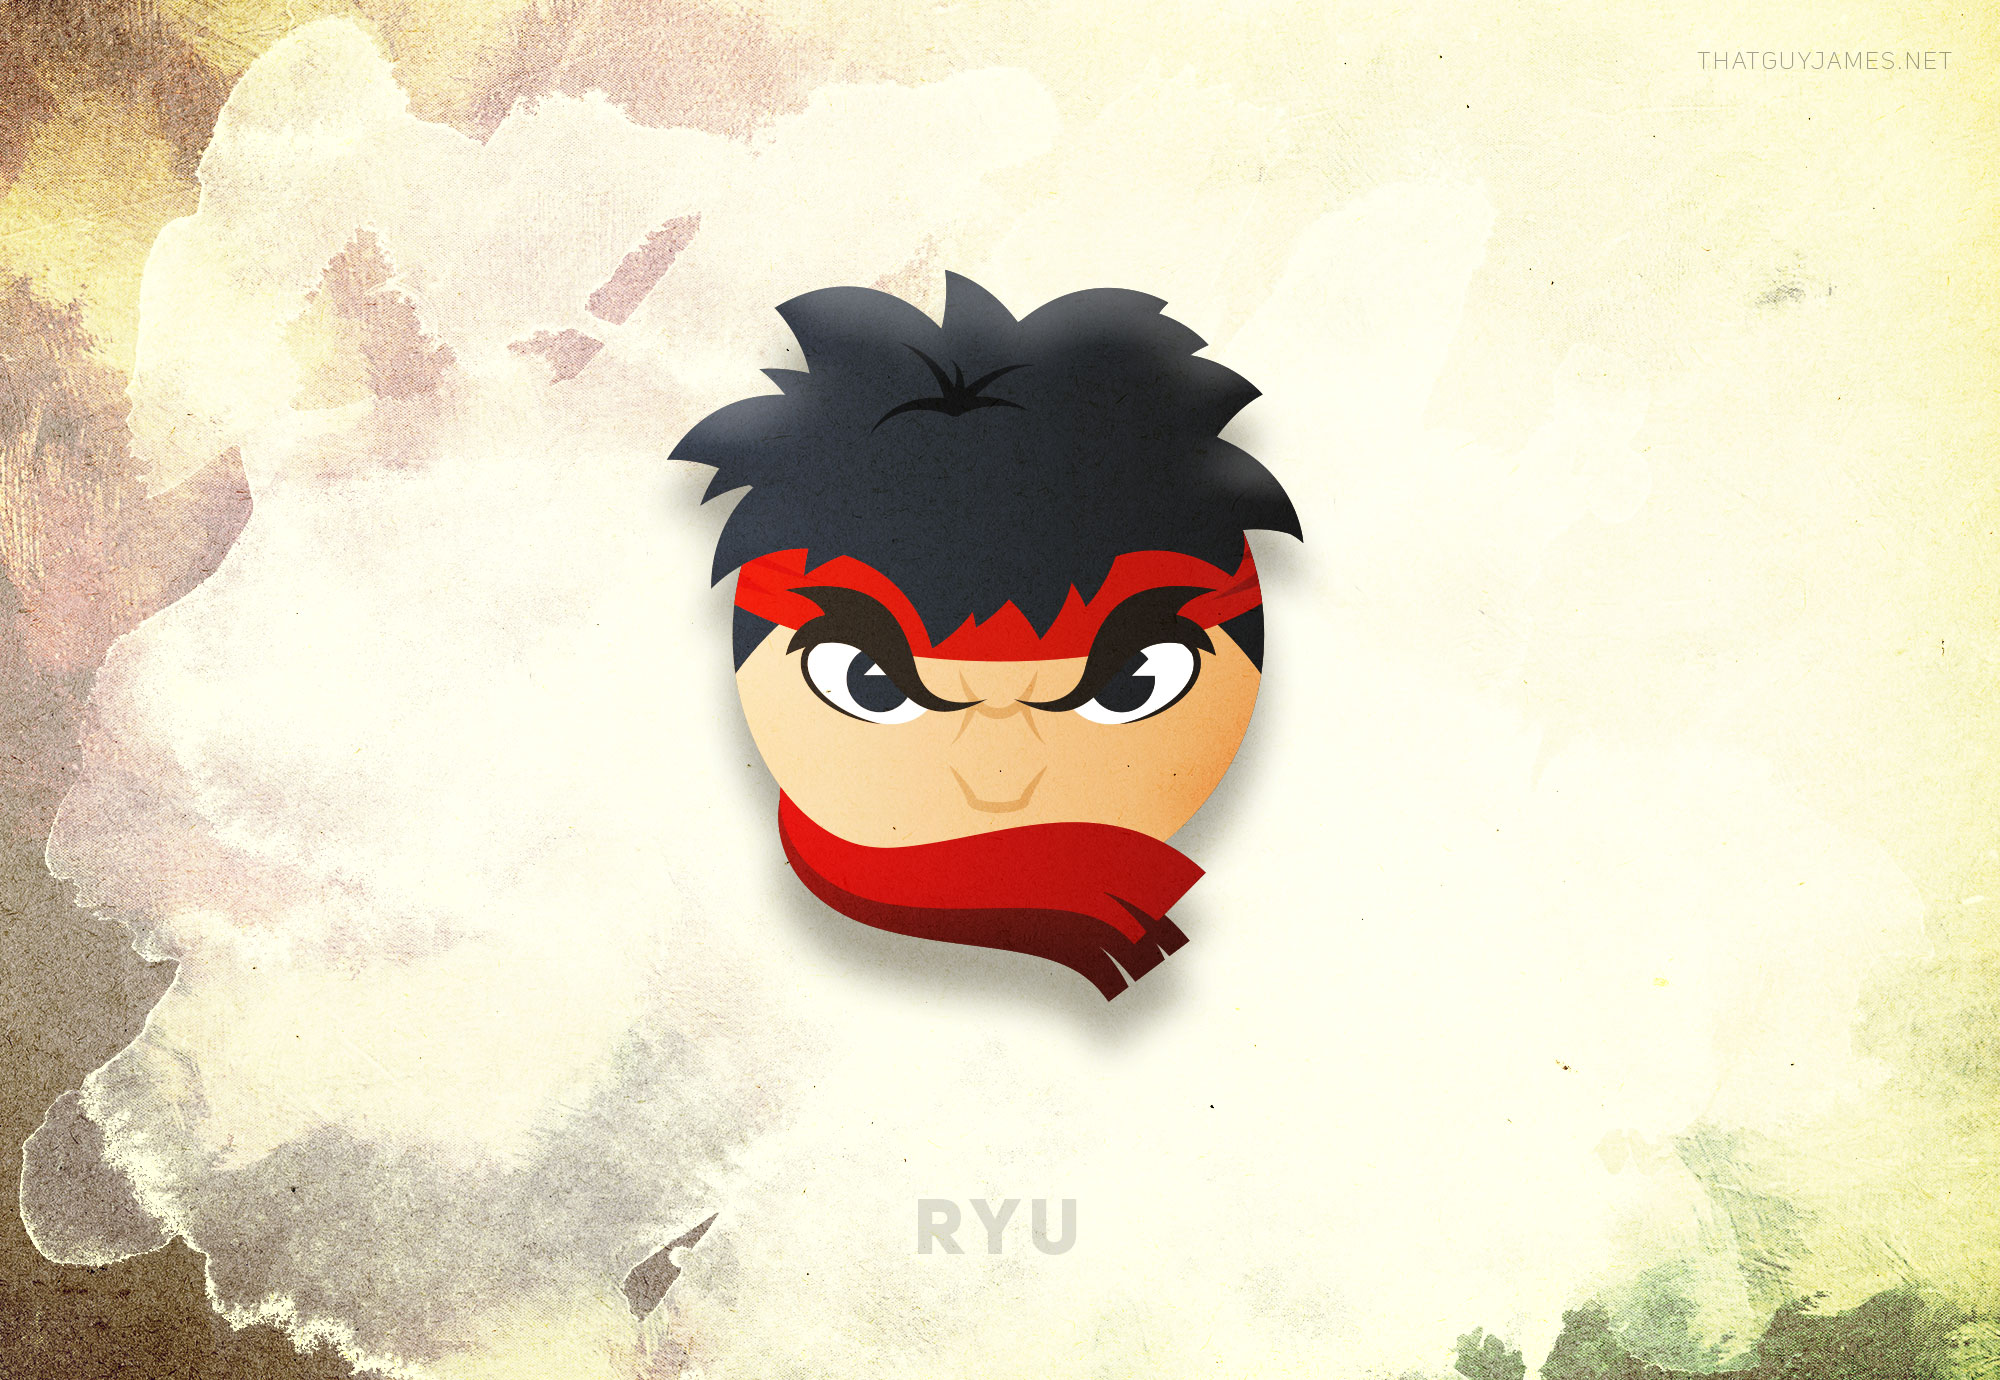 EYEBROWS. I played with a couple different configurations for Ryu's signature headband, choosing to settle on one that simultaneously featured the cloth and obscured the mouth area, which it turned out was redundant. Ryu's face is pretty much always a scowl; we know he's in a focused/bad mood, the eyebrows say it all.